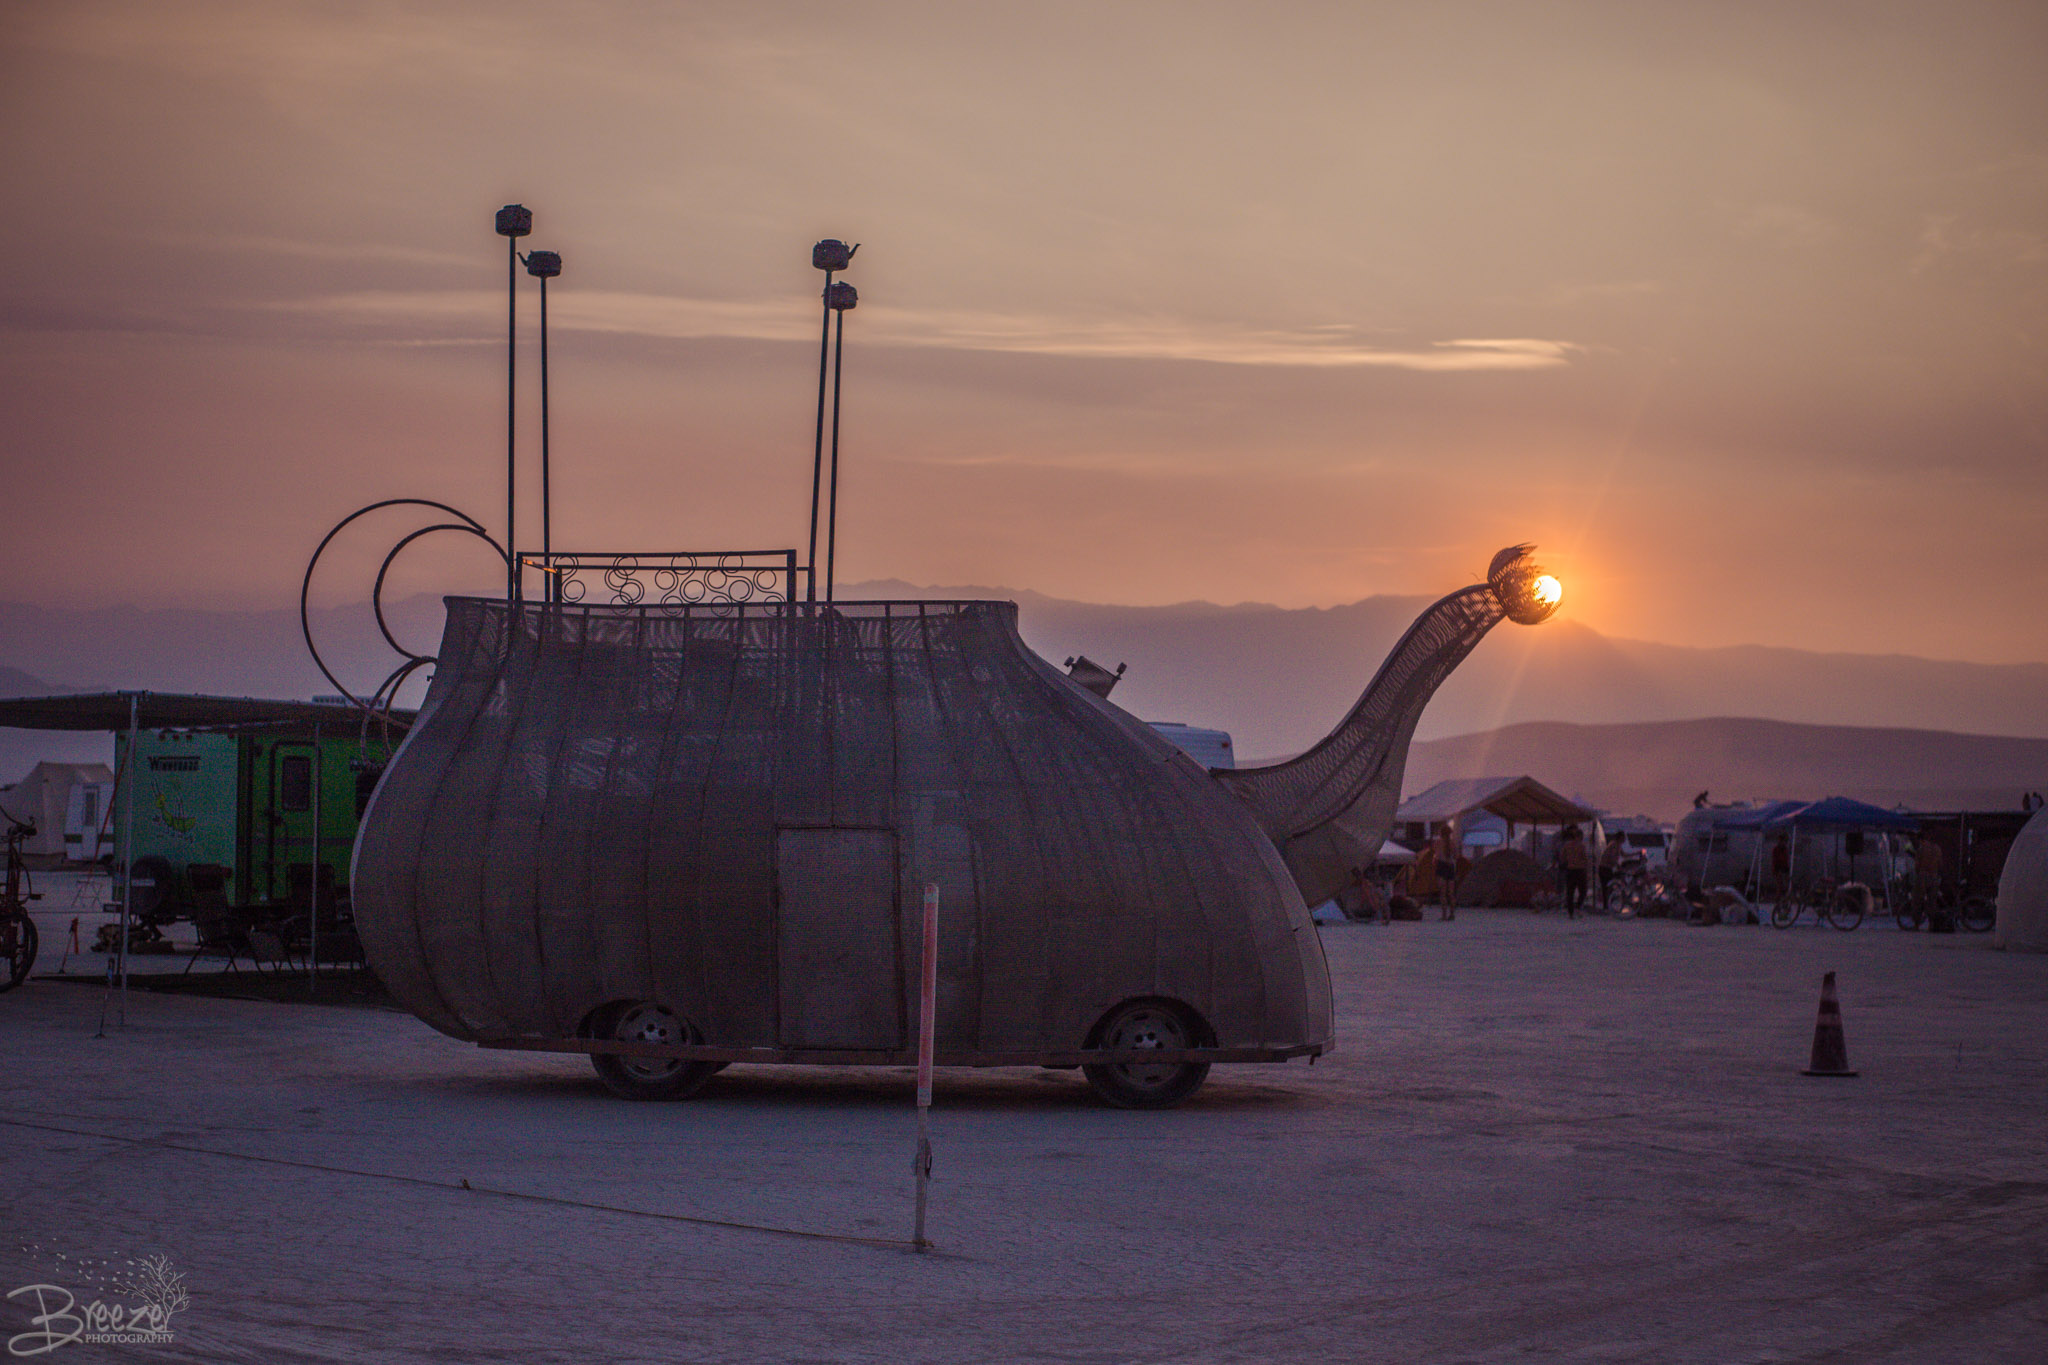 Brie'Ana Breeze Photography & Media - Burning Man 2018-2945.jpg